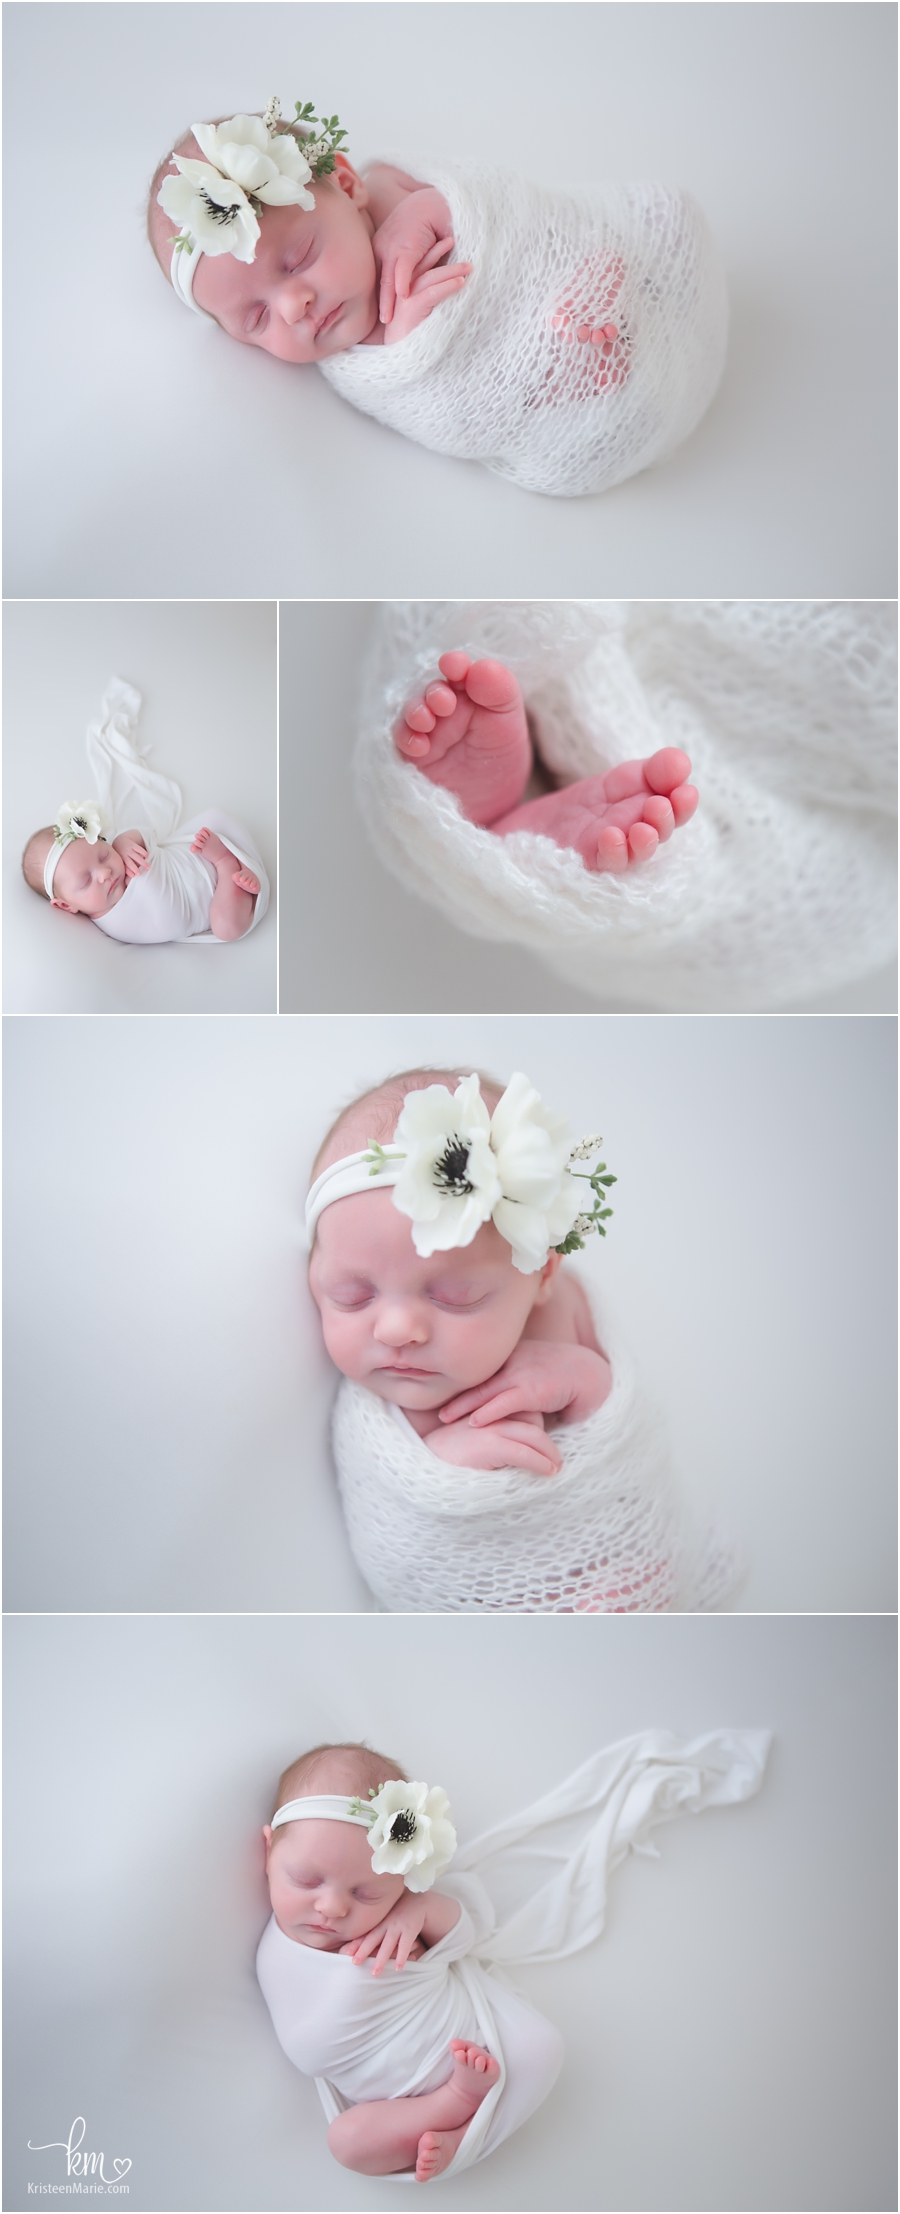 newborn baby in white - white newborn pictures - sleeping little girl - classic images